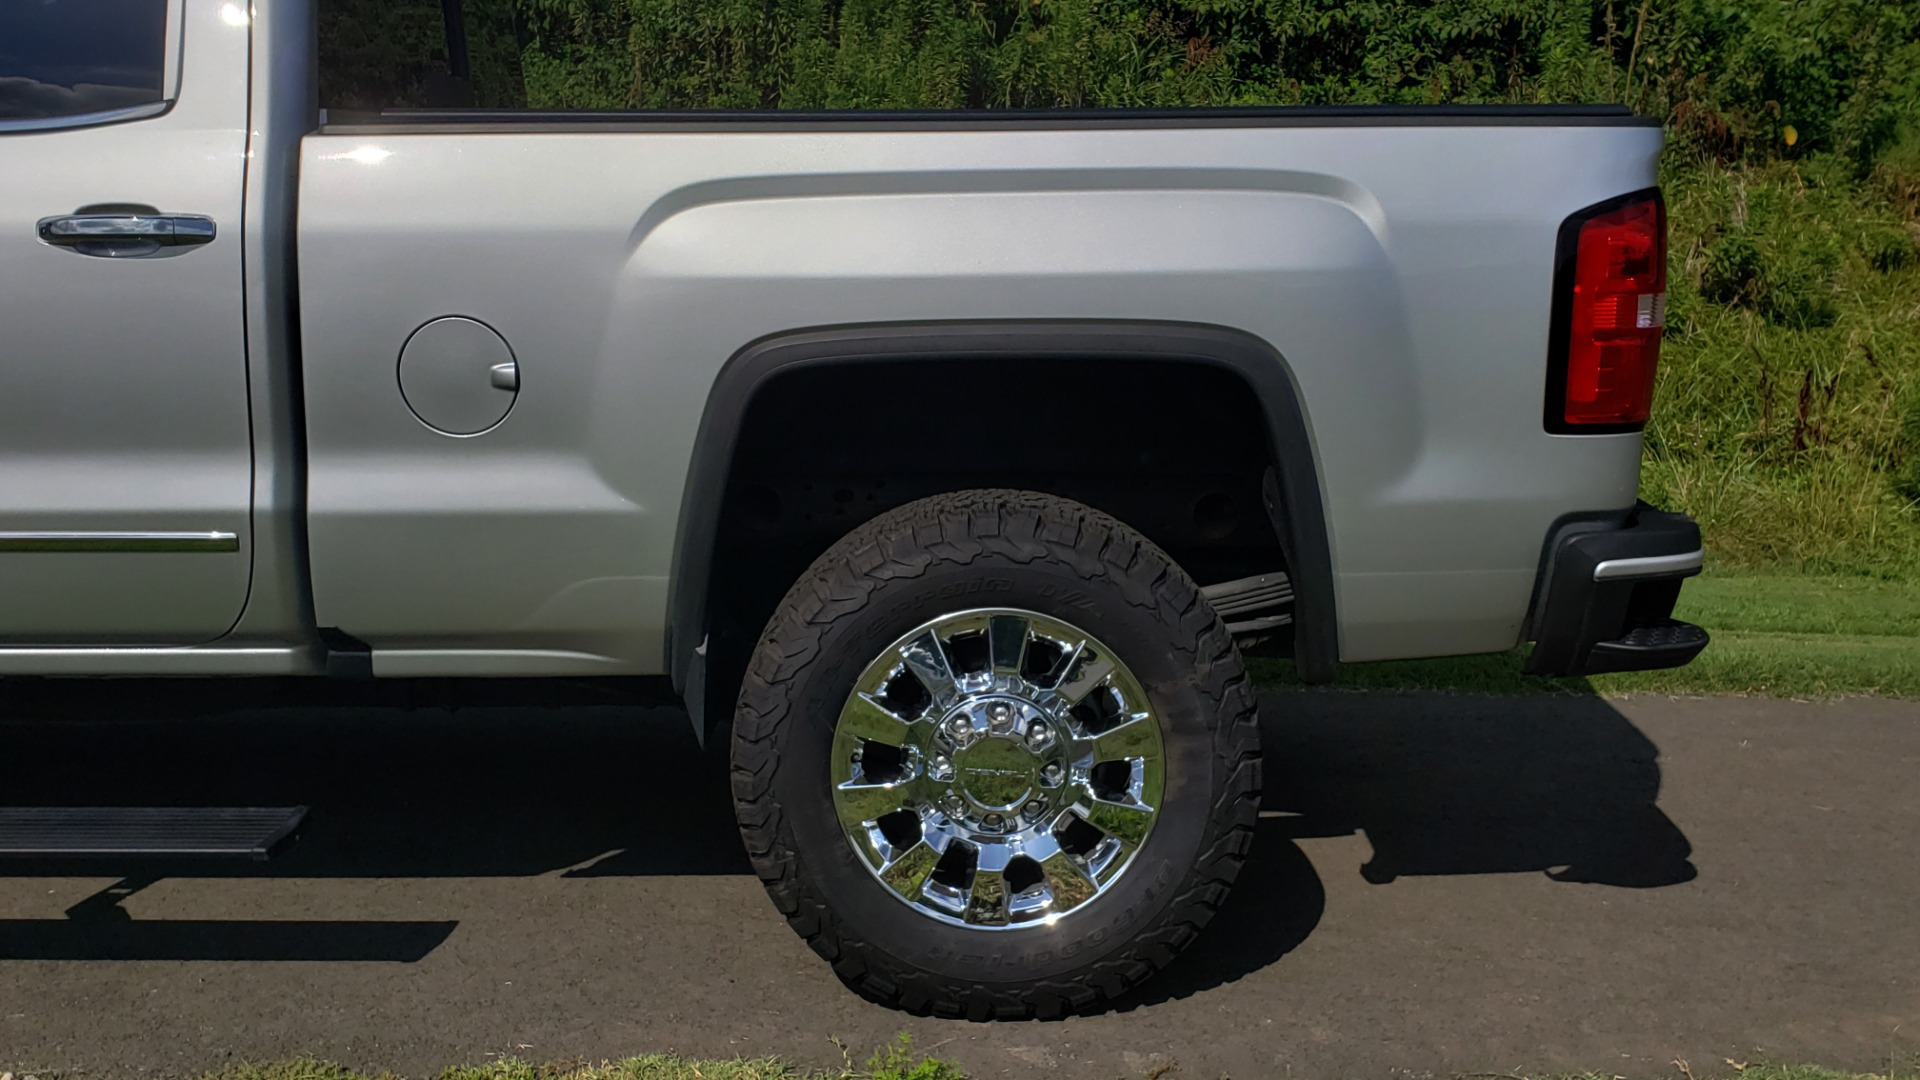 Used 2018 GMC SIERRA 2500HD DENALI 4WD / 6.6L DURAMAX / NAV / SUNROOF / BOSE / REARVIEW for sale Sold at Formula Imports in Charlotte NC 28227 89